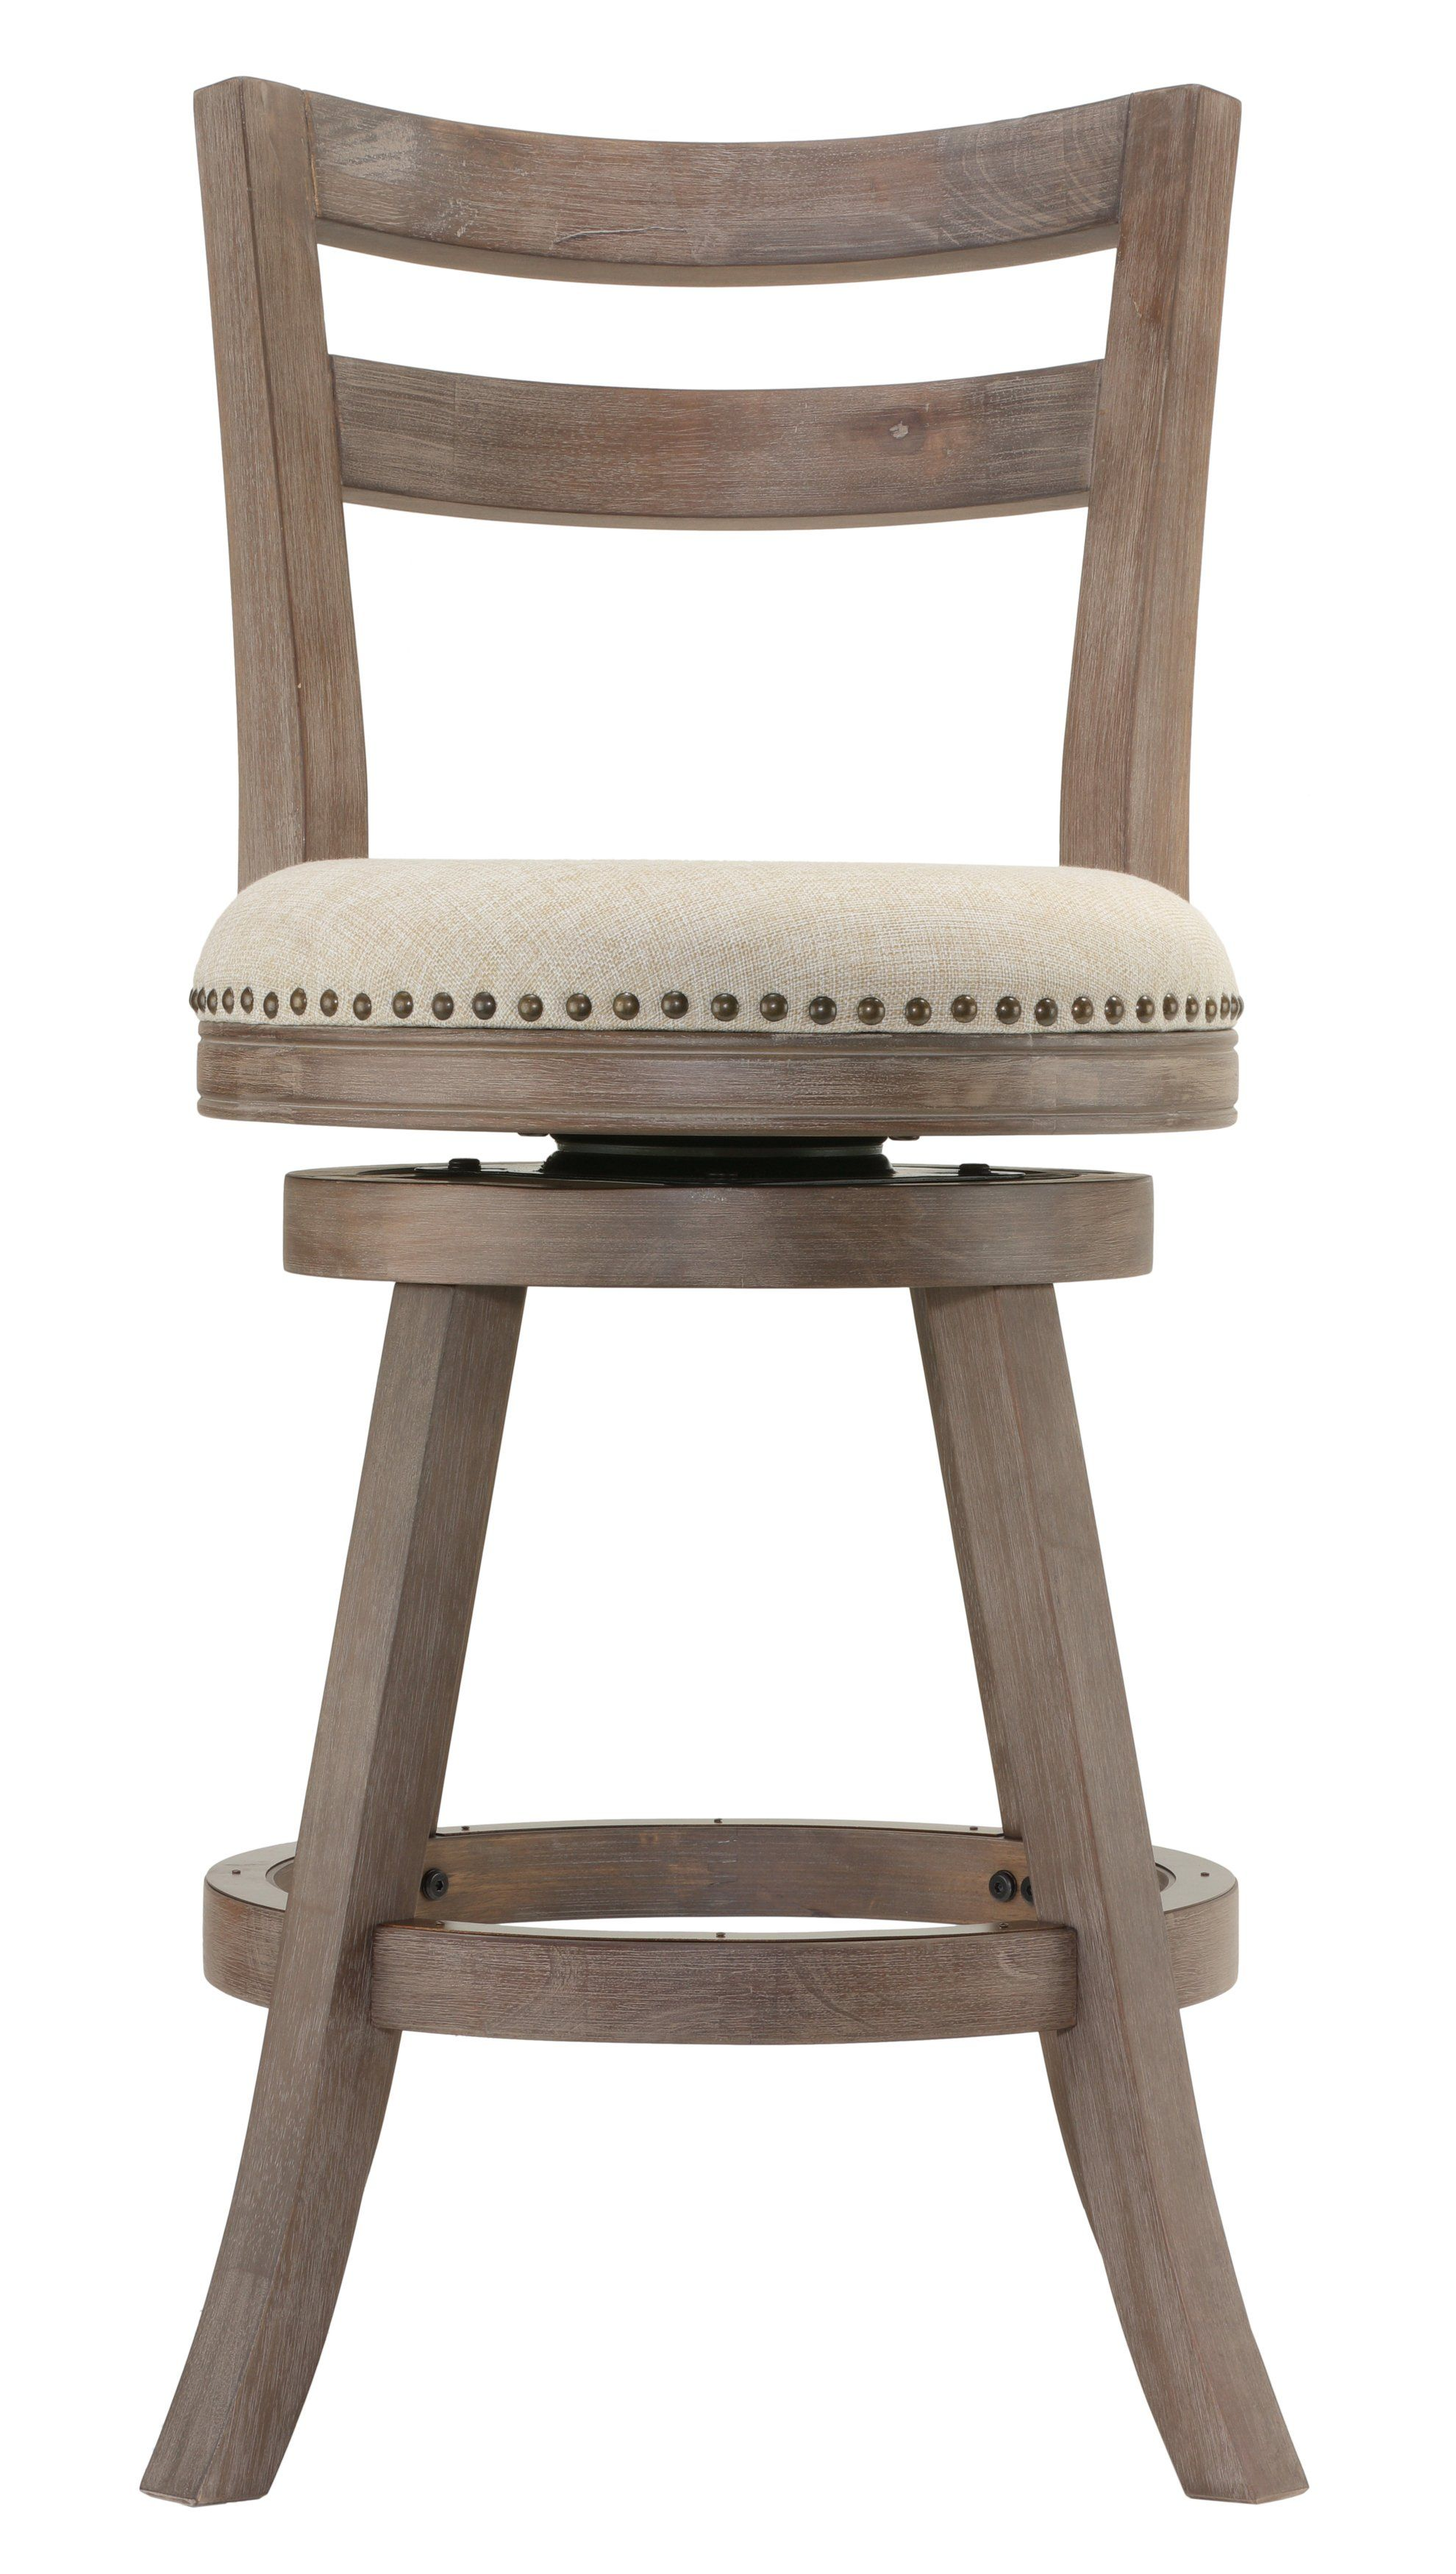 Cortesi Home Harper Counter Stool Swivel Bar With Back In Solid Oak Wood Beige Fabric